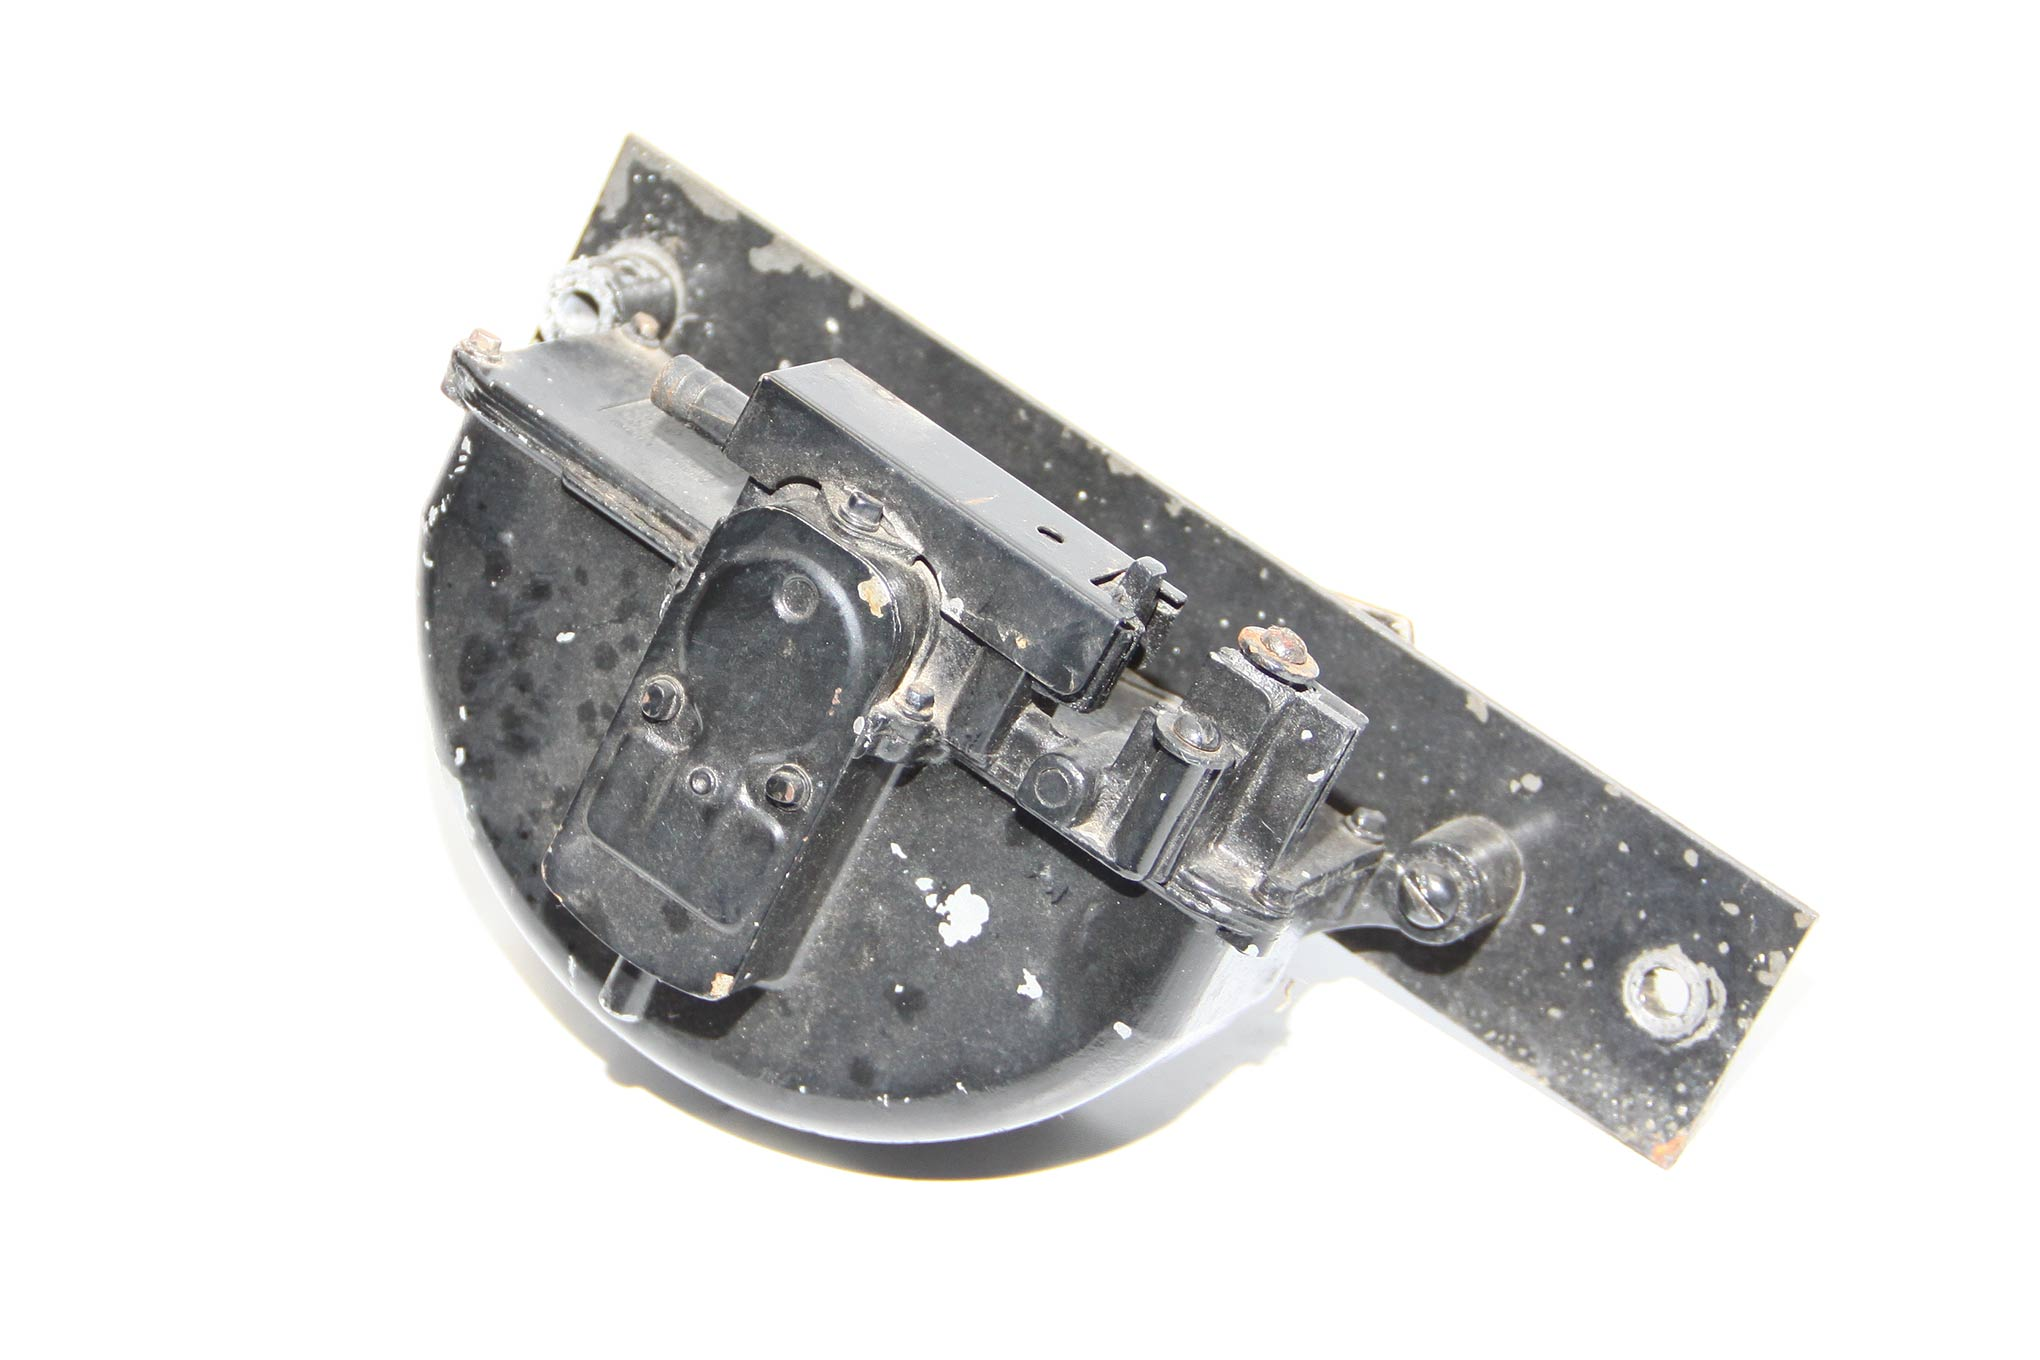 The original wiper motor was removed along with the mounting bracket that attached to the firewall.